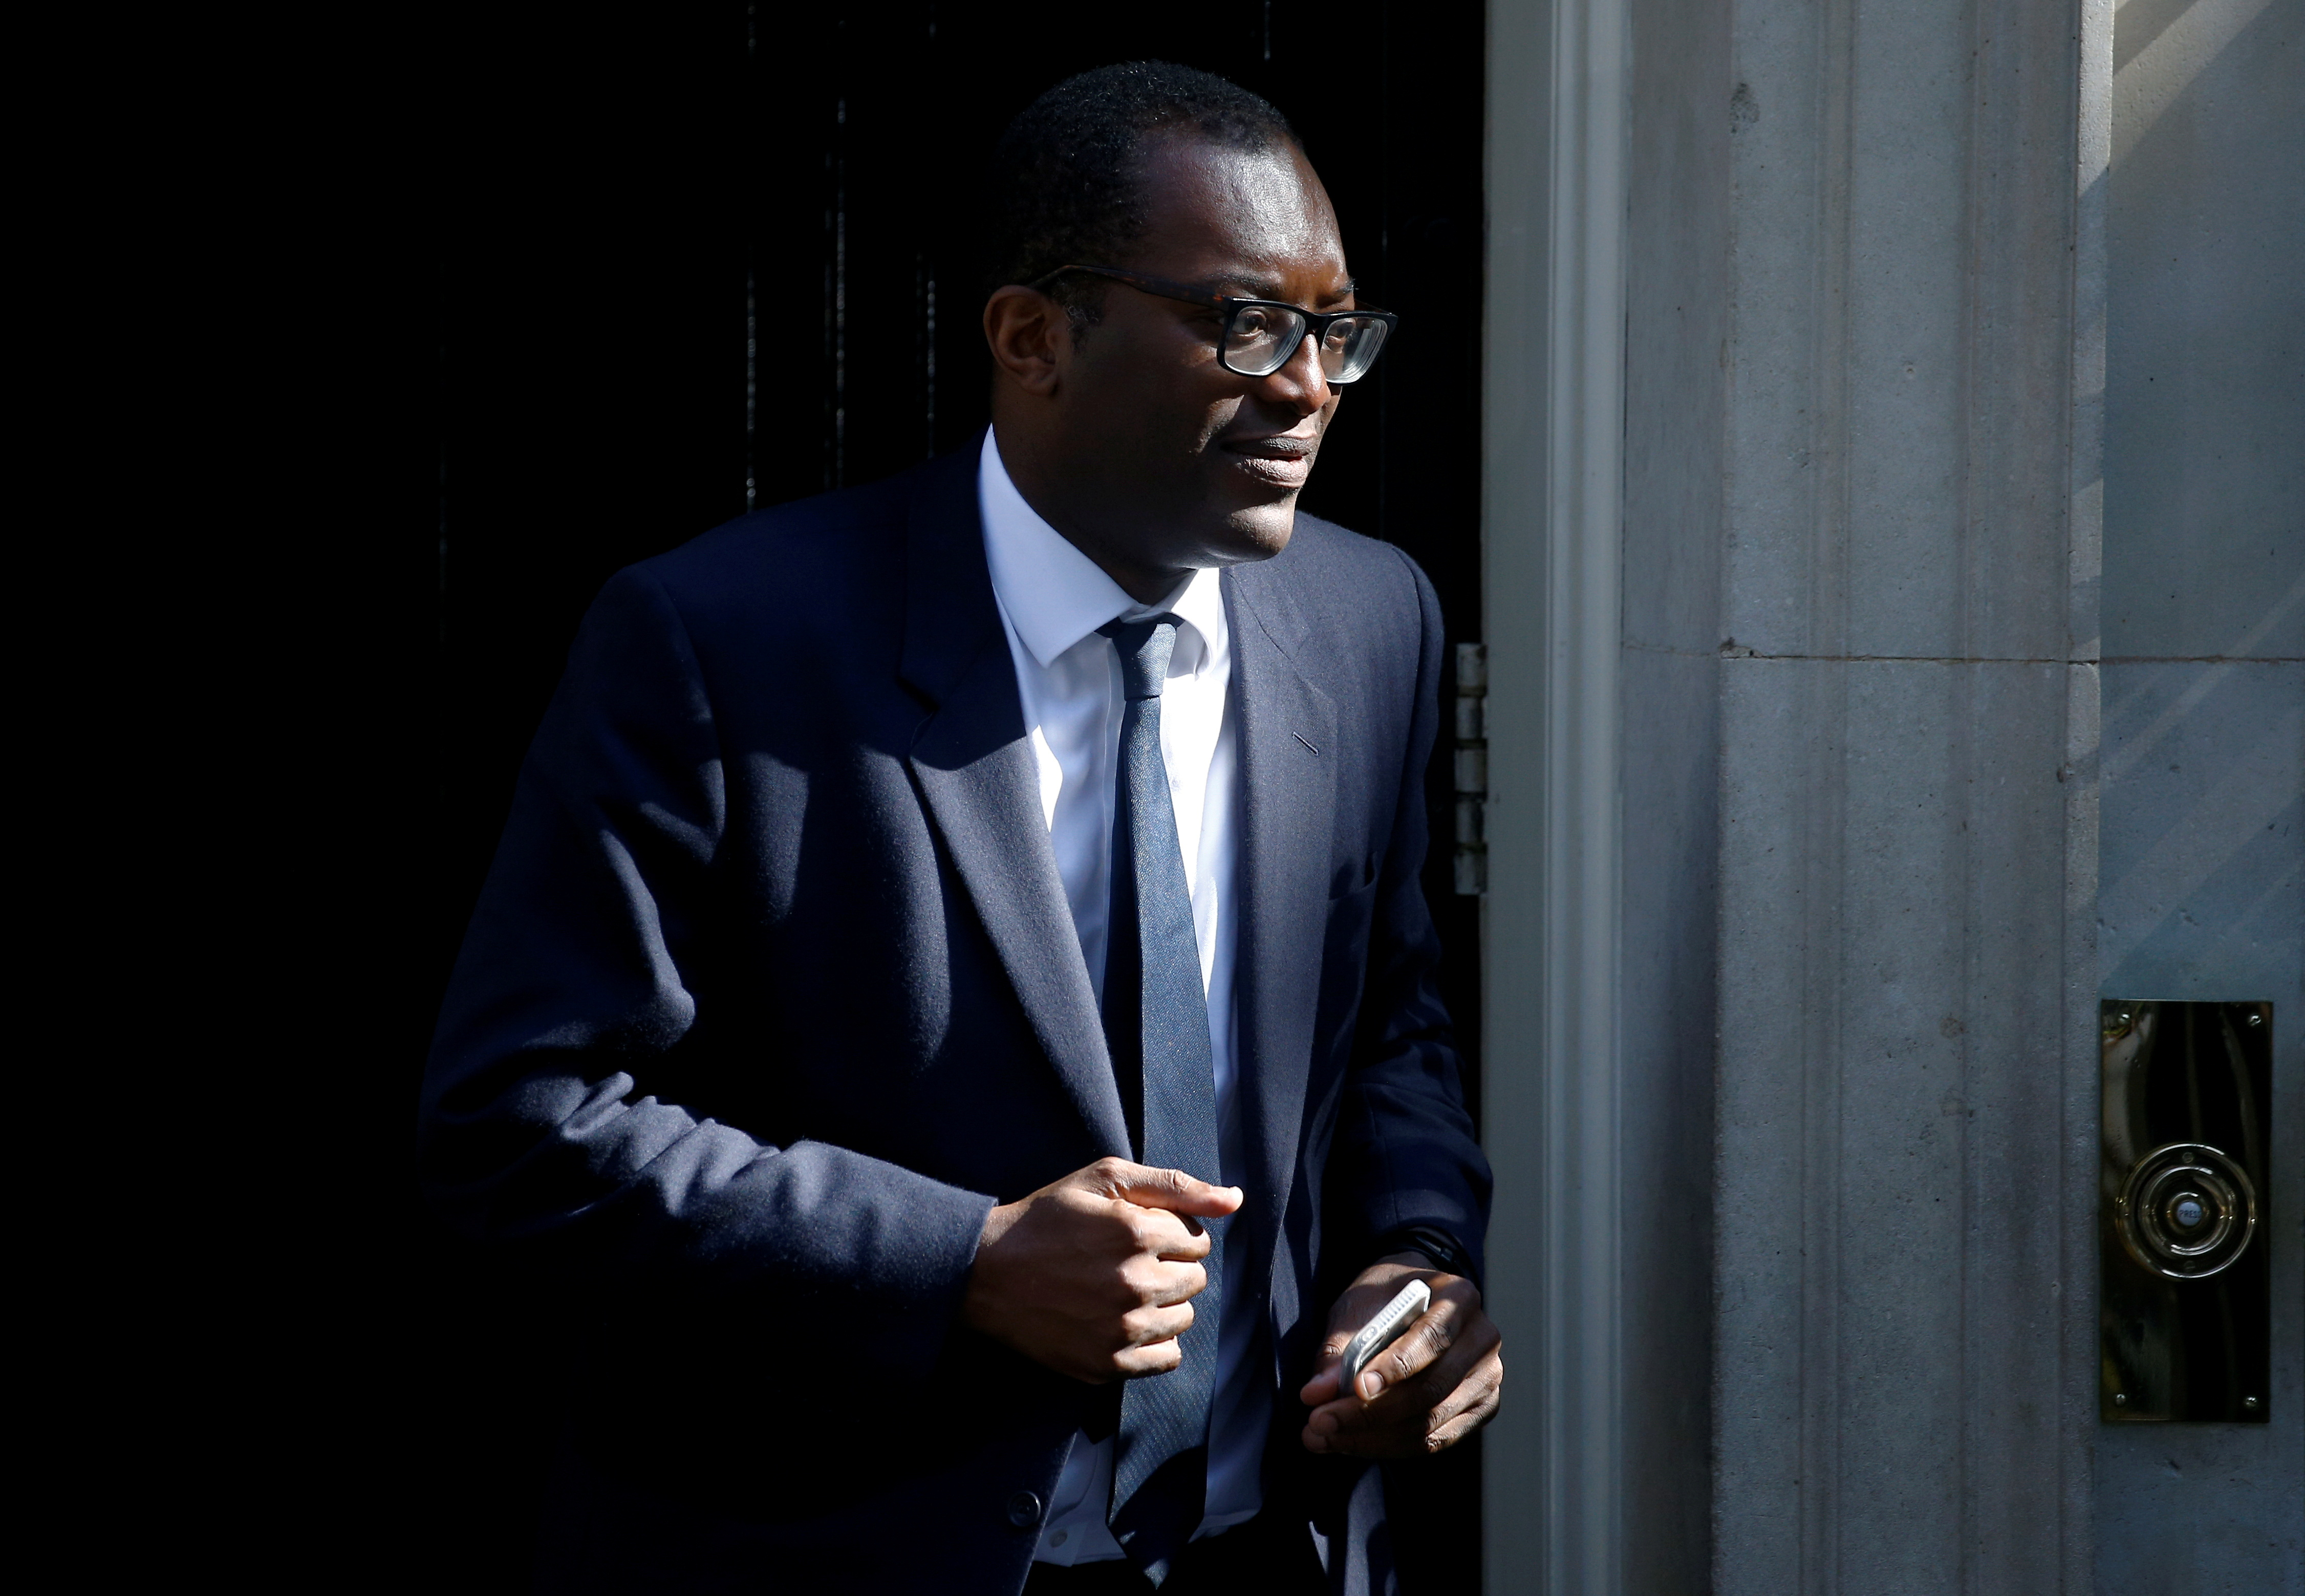 Newly appointed Britain's Minister of State at the Department for Business, Energy and Industrial Strategy, Kwasi Kwarteng, is seen outside Downing Street in London, Britain July 25, 2019. REUTERS/Henry Nicholls/File Photo